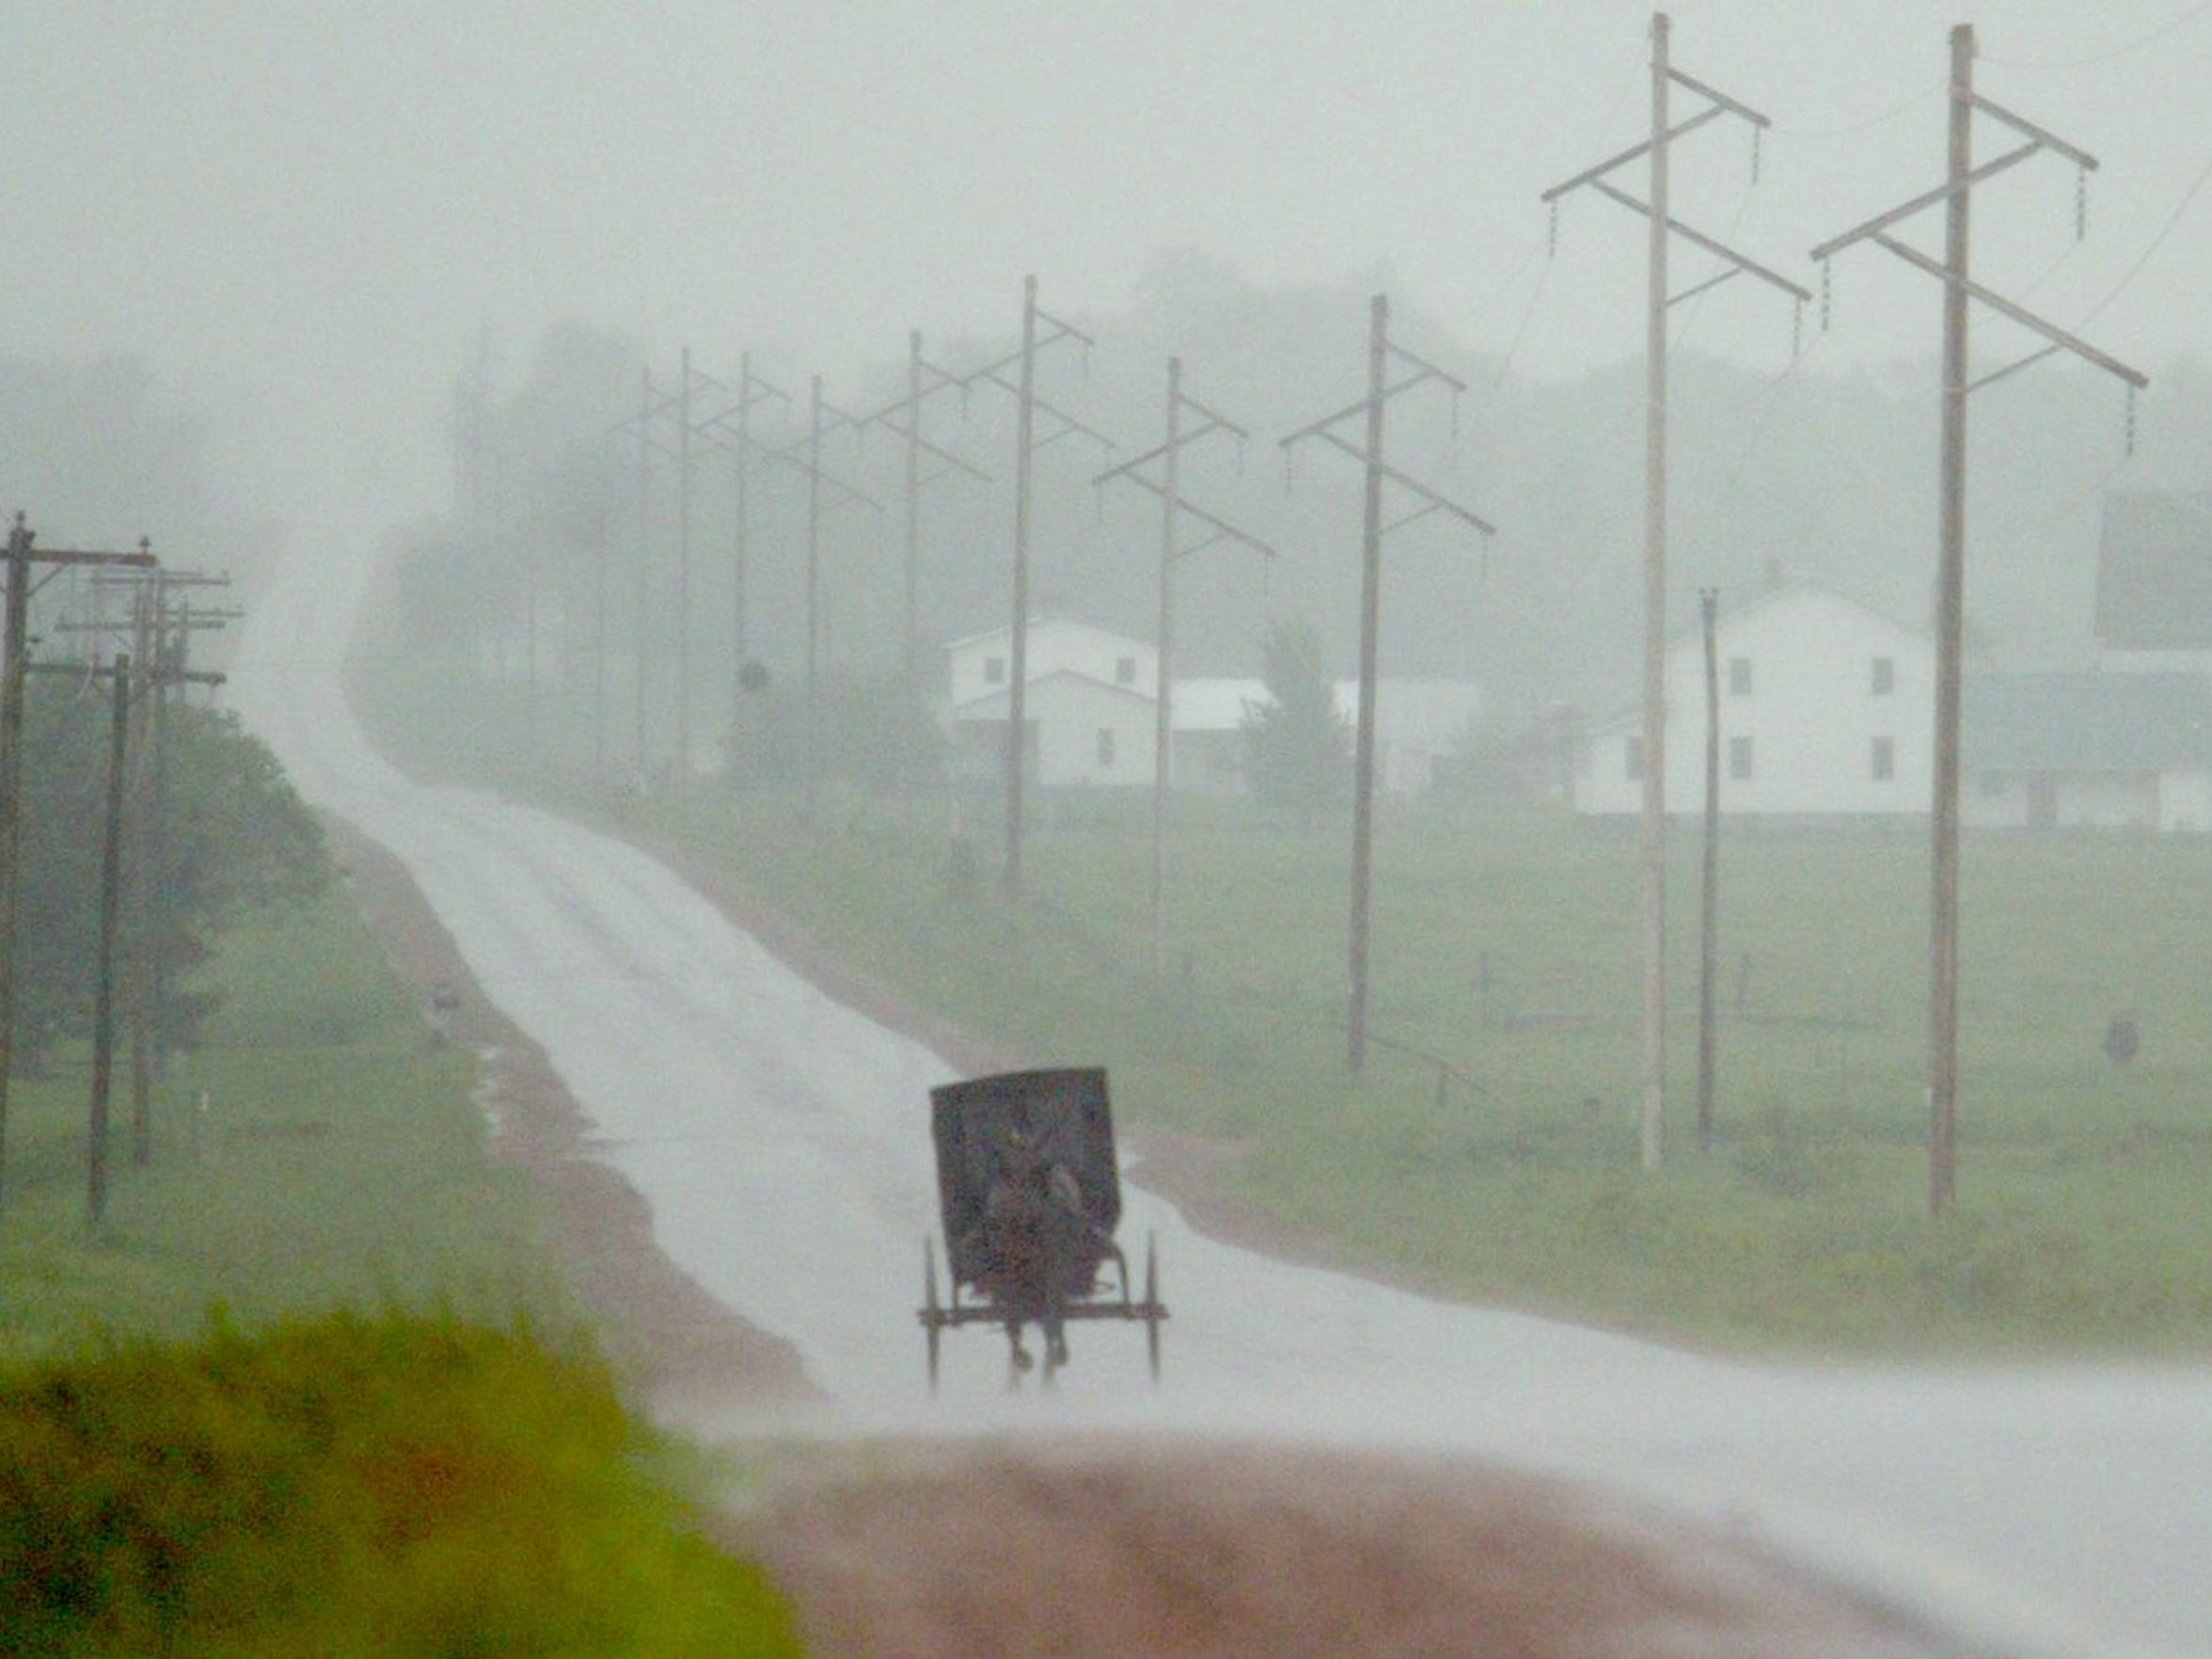 An Amish buggy drives through the rain in Clark County.